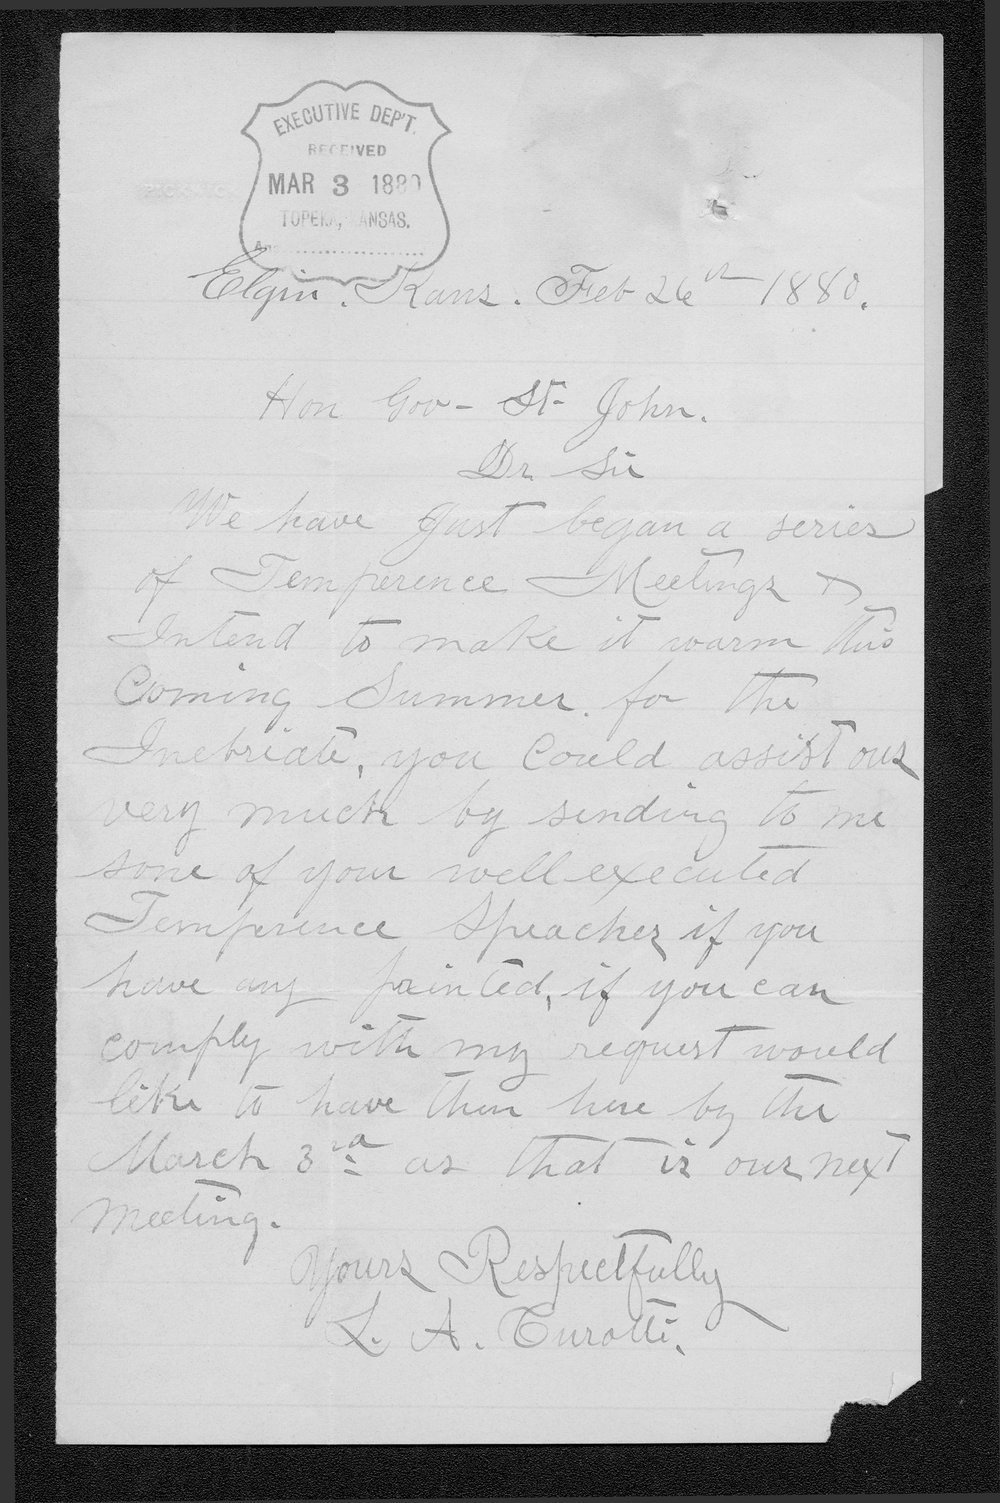 L.A. Curatte to Governor St. John